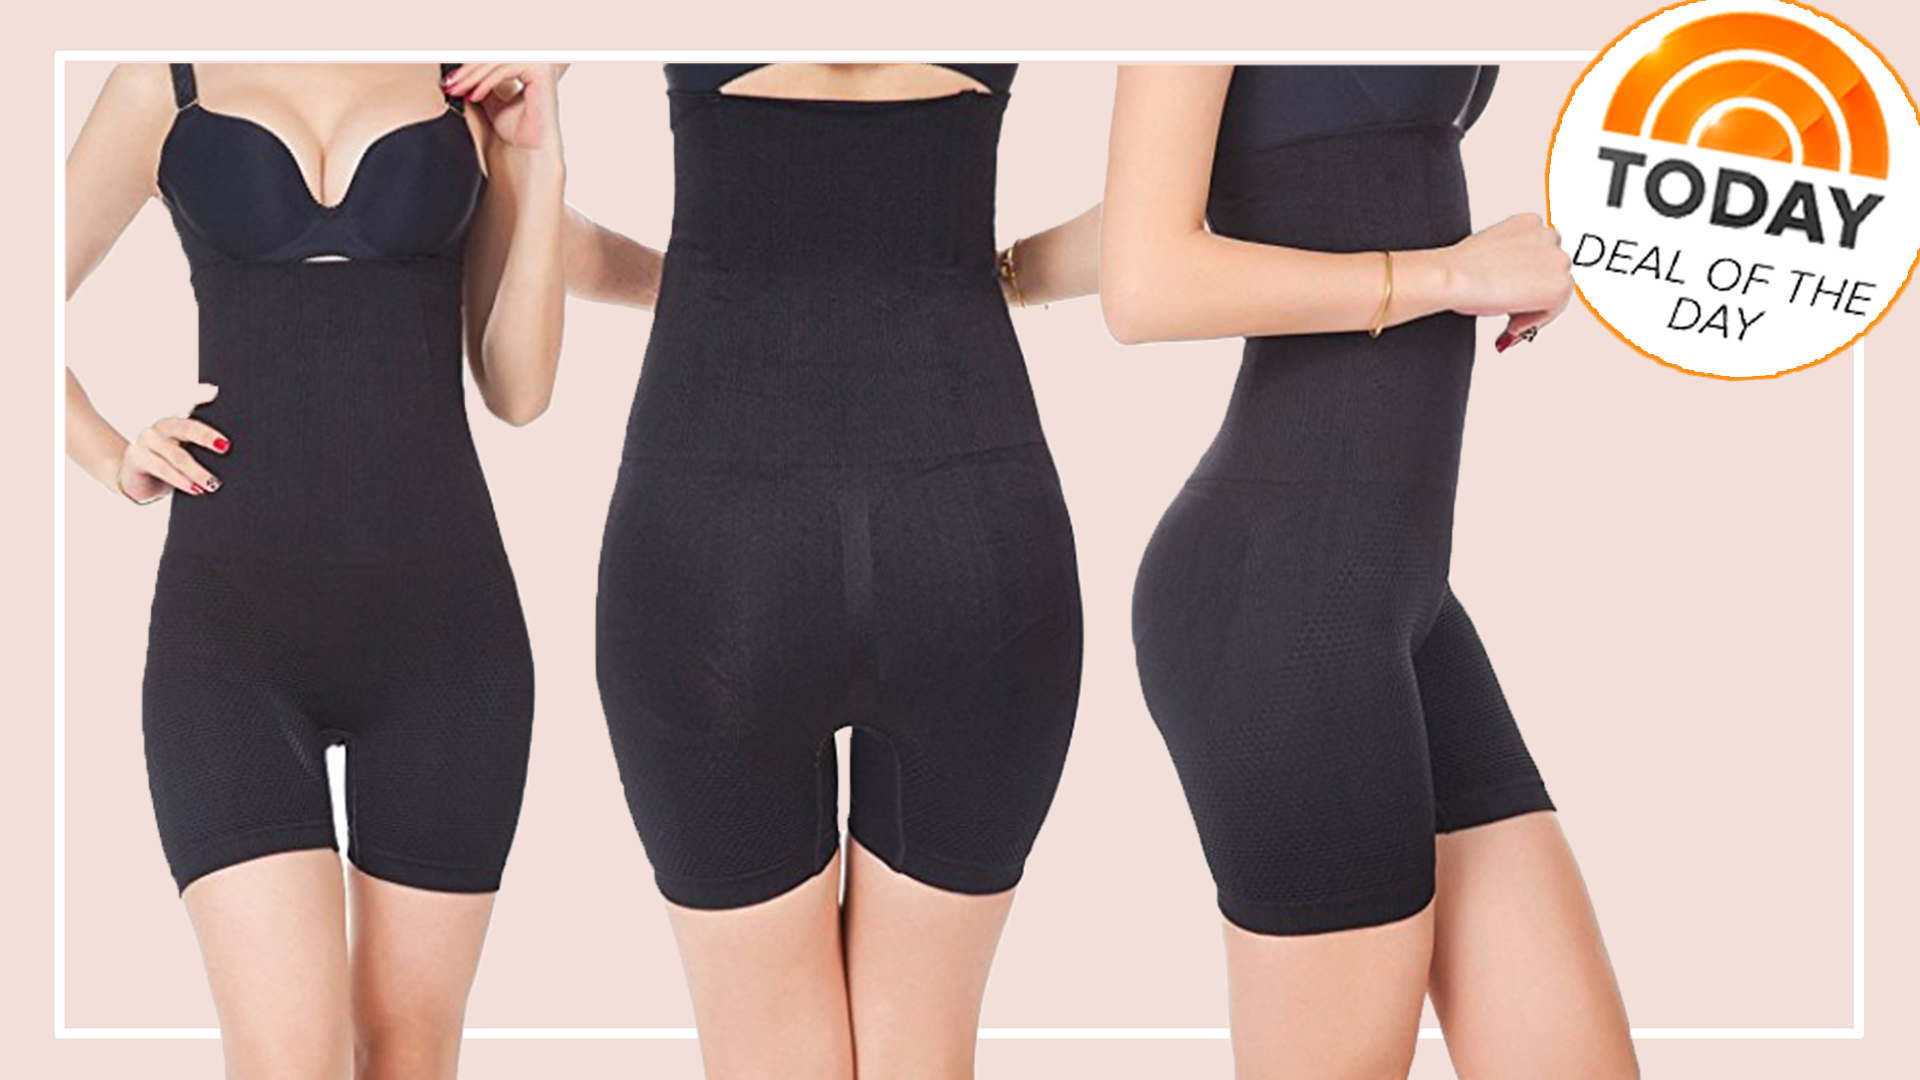 04a2bb2d4 Deal of the Day  60 percent off high-waisted shapewear shorts from Robert  Matthew